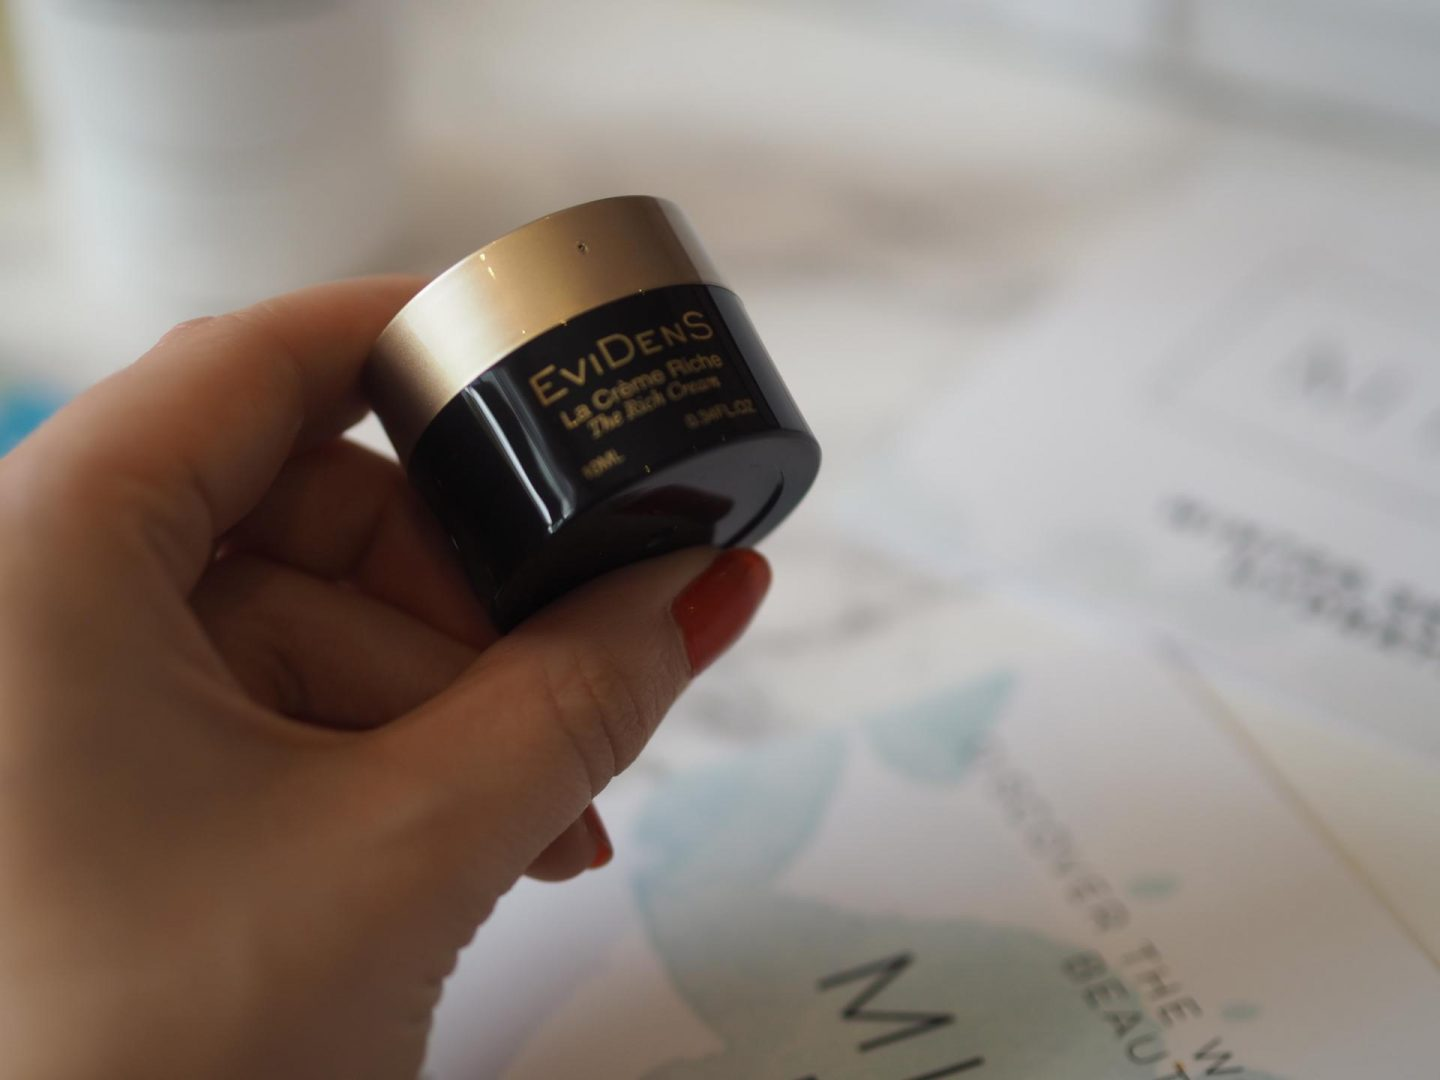 product in the MINTD box is the Evidens- Rich Cream